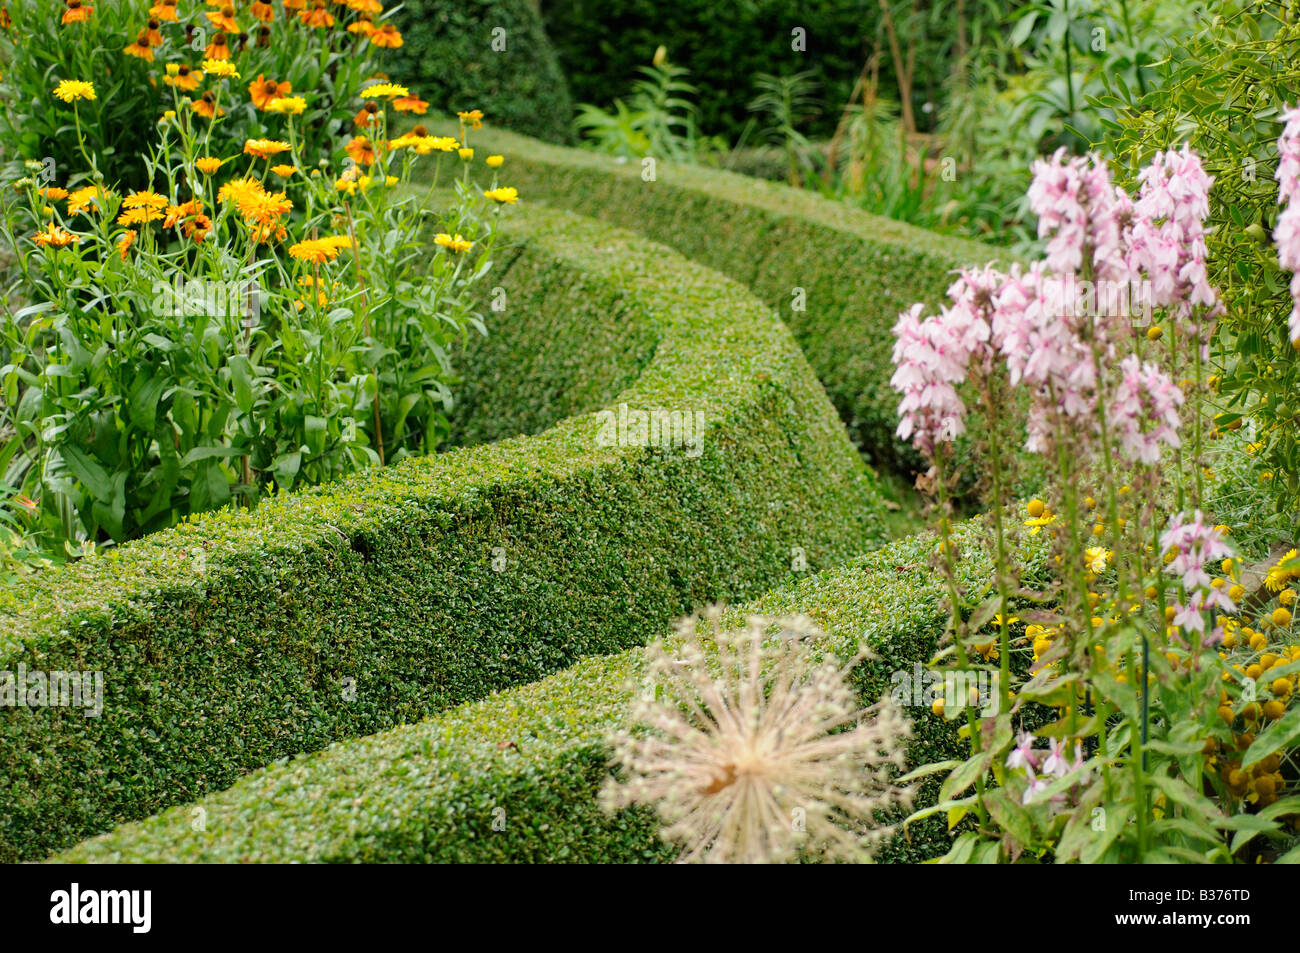 Trimmed Boxwood path hedging in a Summer garden Uk August - Stock Image